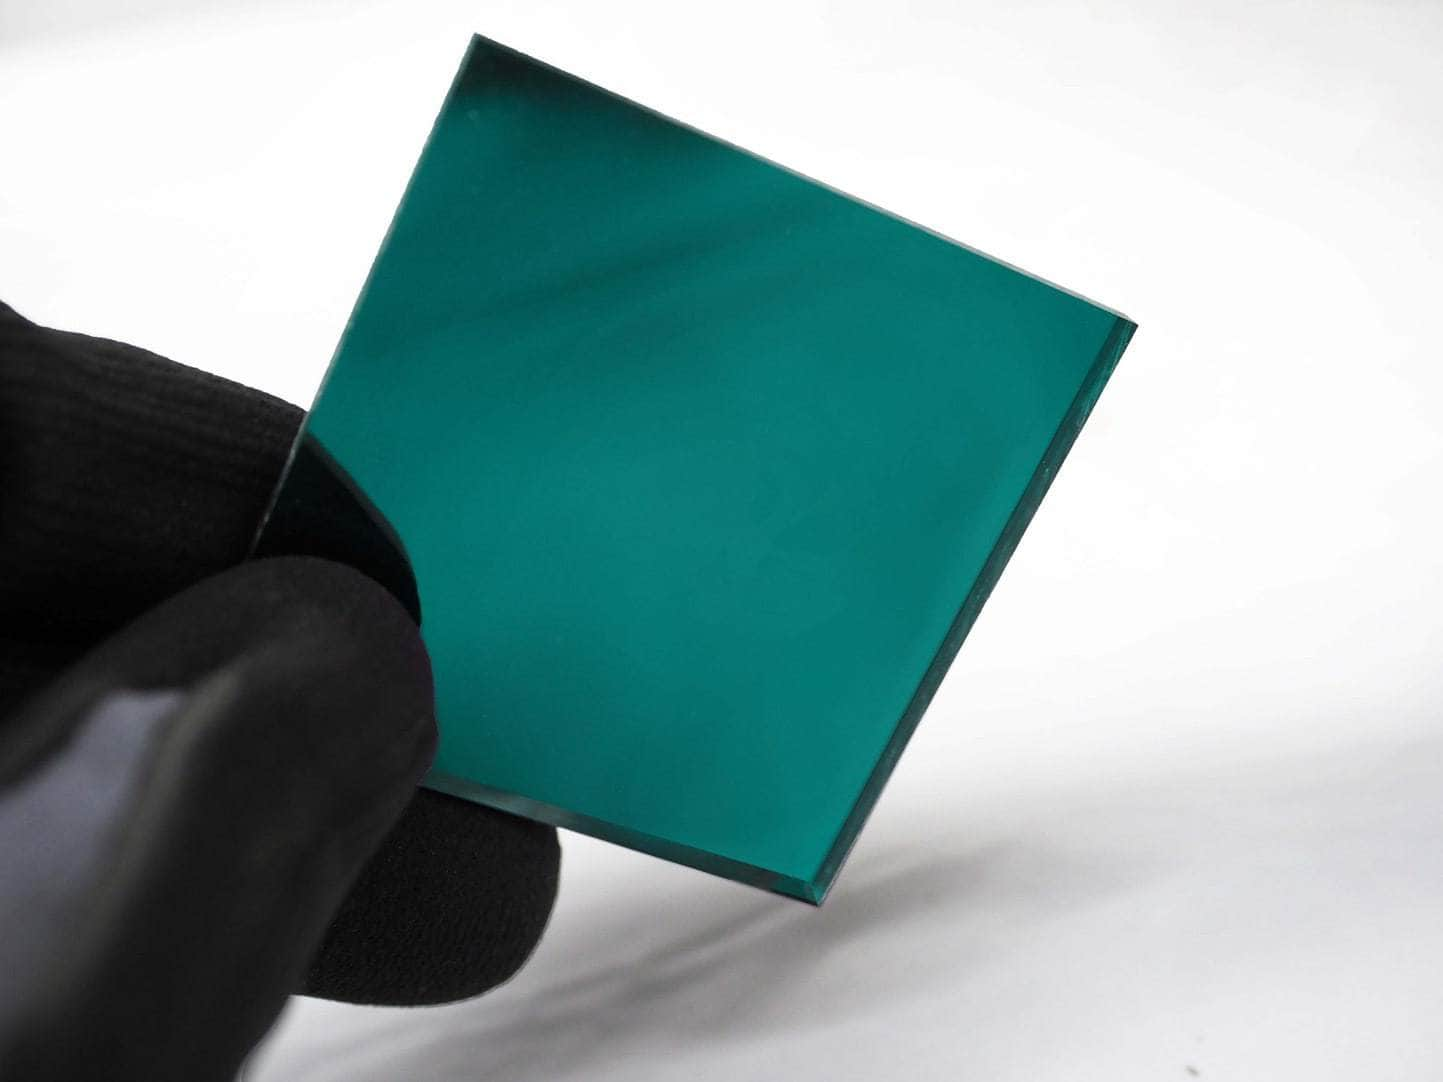 Acrylic two way mirror color sample 2120 Teal